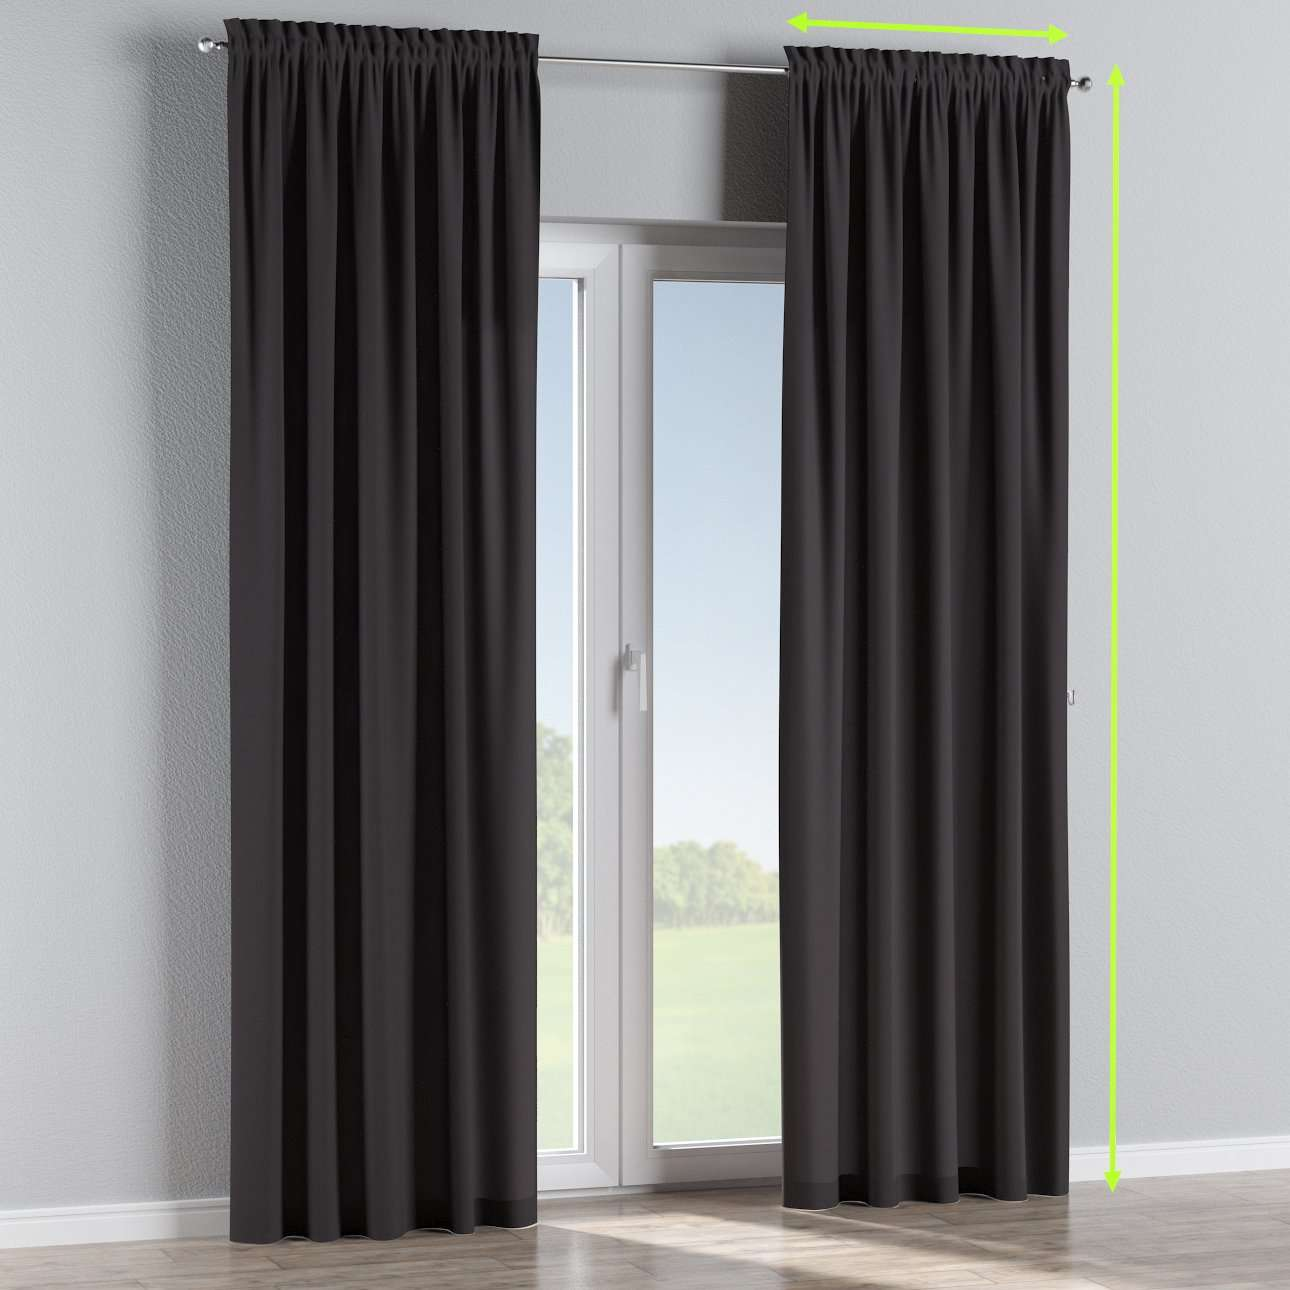 Slot and frill lined curtains in collection Cotton Panama, fabric: 702-09